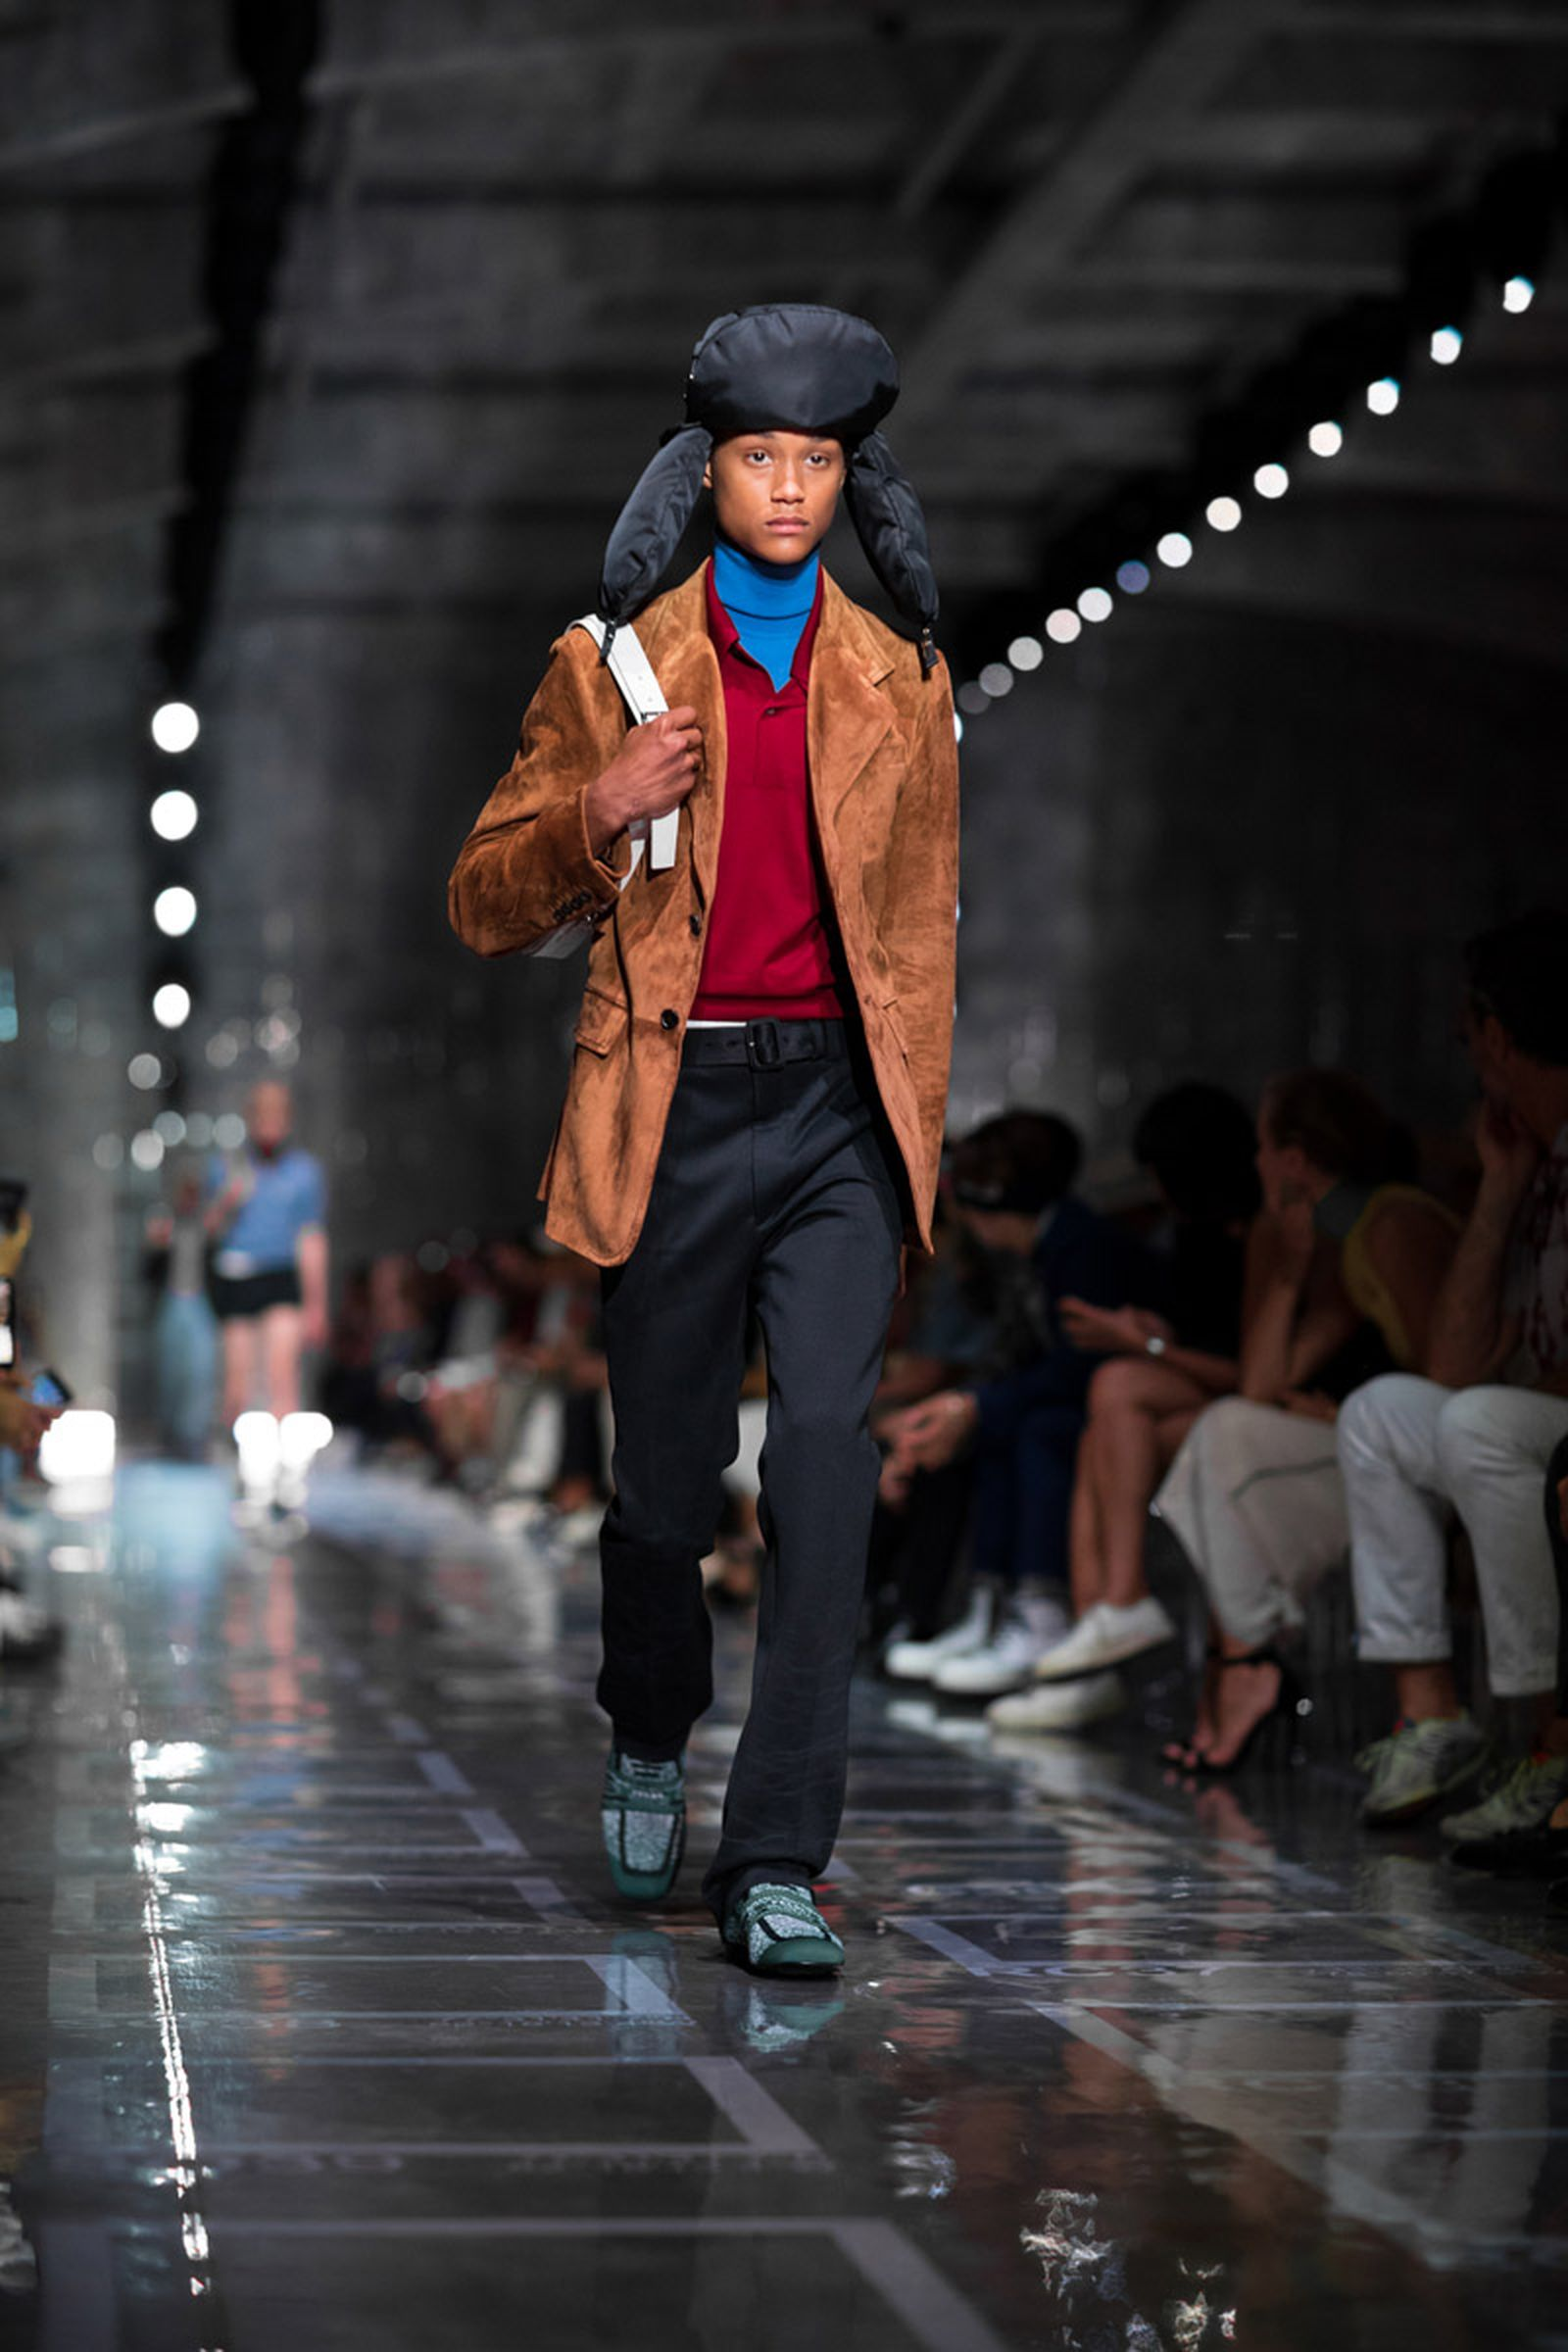 what happens to fashion week after virgil abloh Louis Vuitton ann demeulemeester